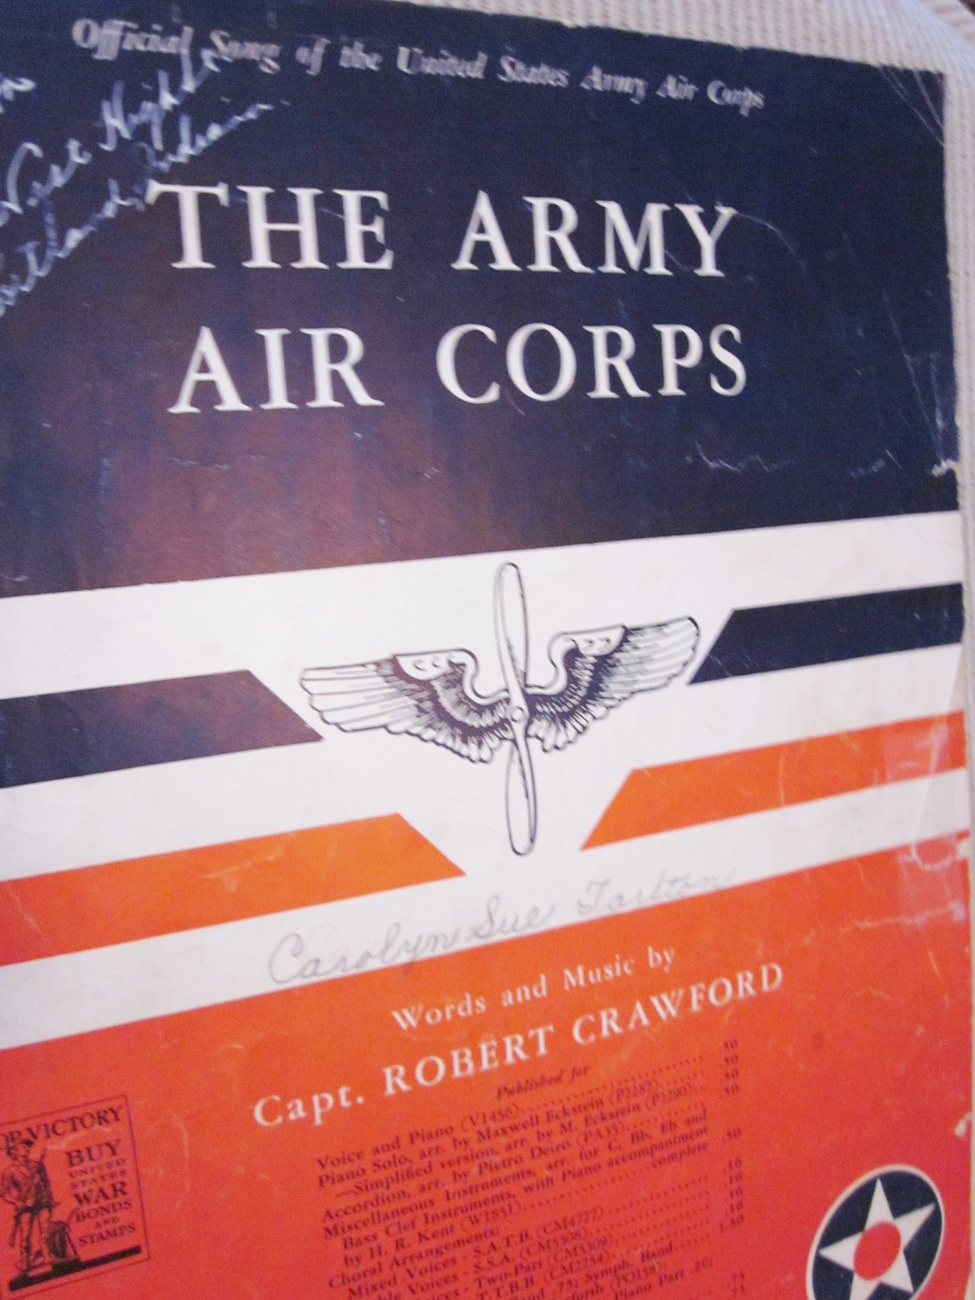 Vintage Sheet Music The Army Air Corps 1939 by Capt. Robert Crawford